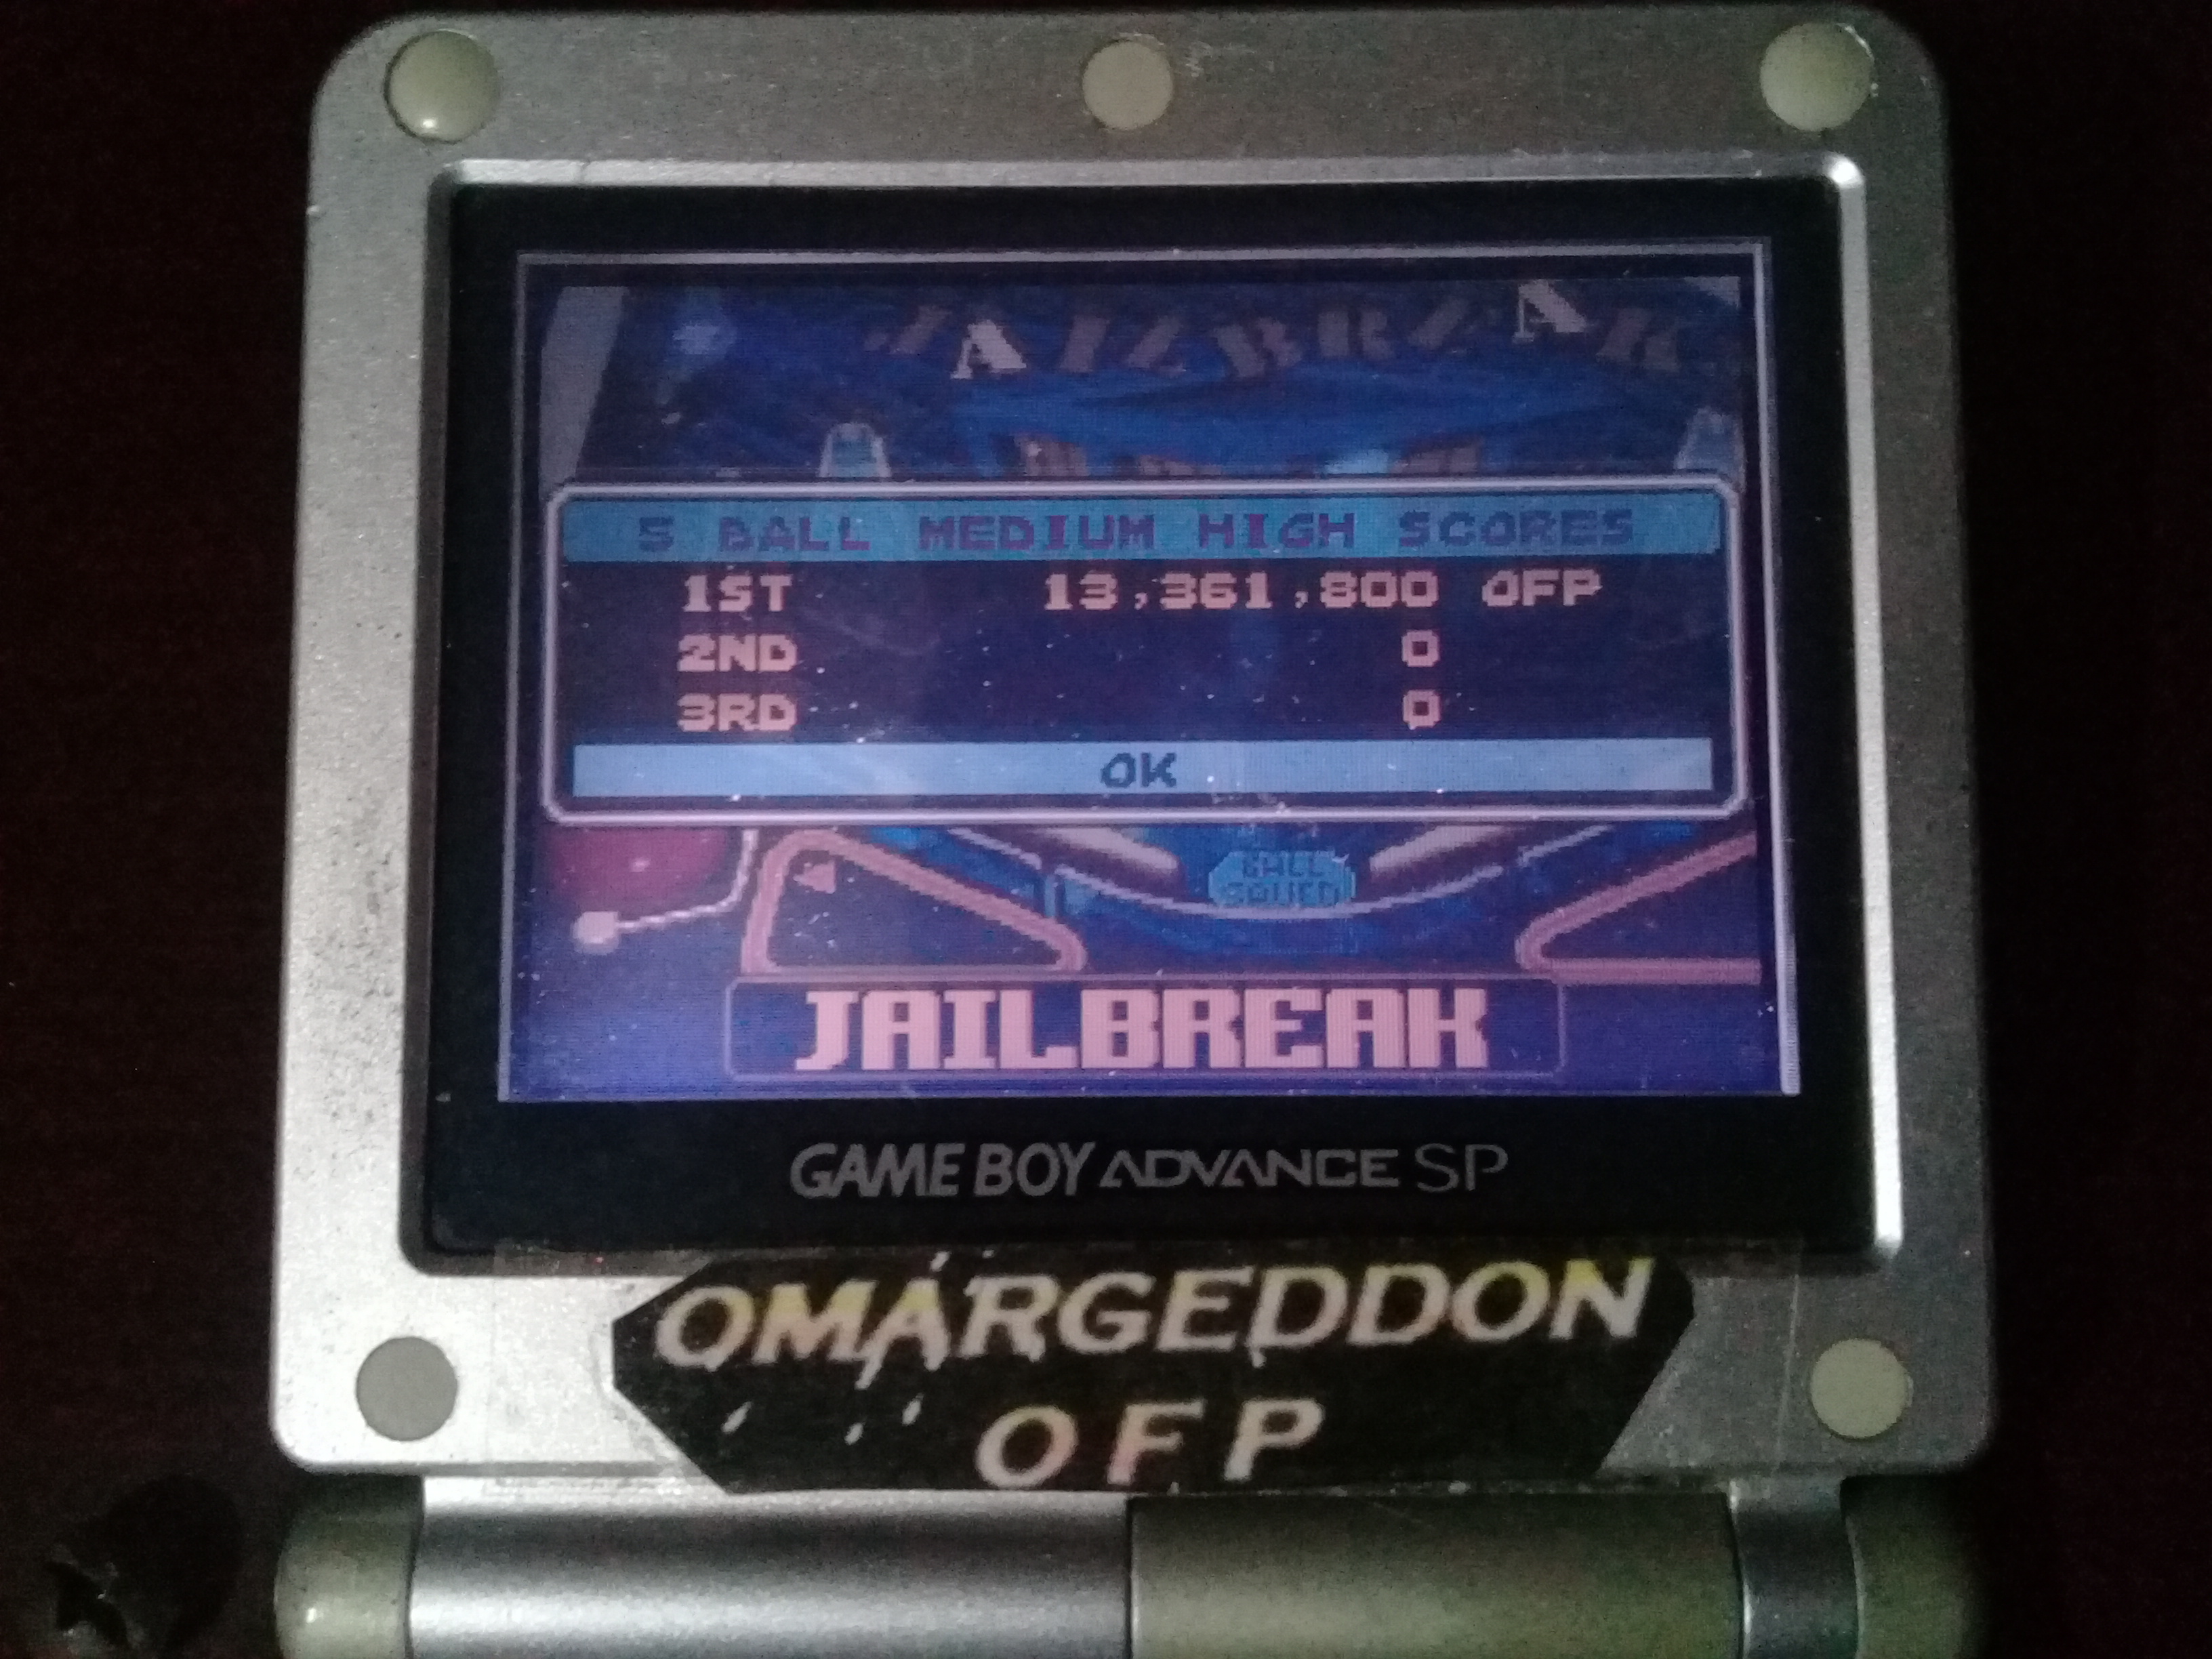 omargeddon: Pinball Advance: Jailbreak [5 Balls] [Medium] (GBA) 13,361,800 points on 2019-10-13 10:35:27